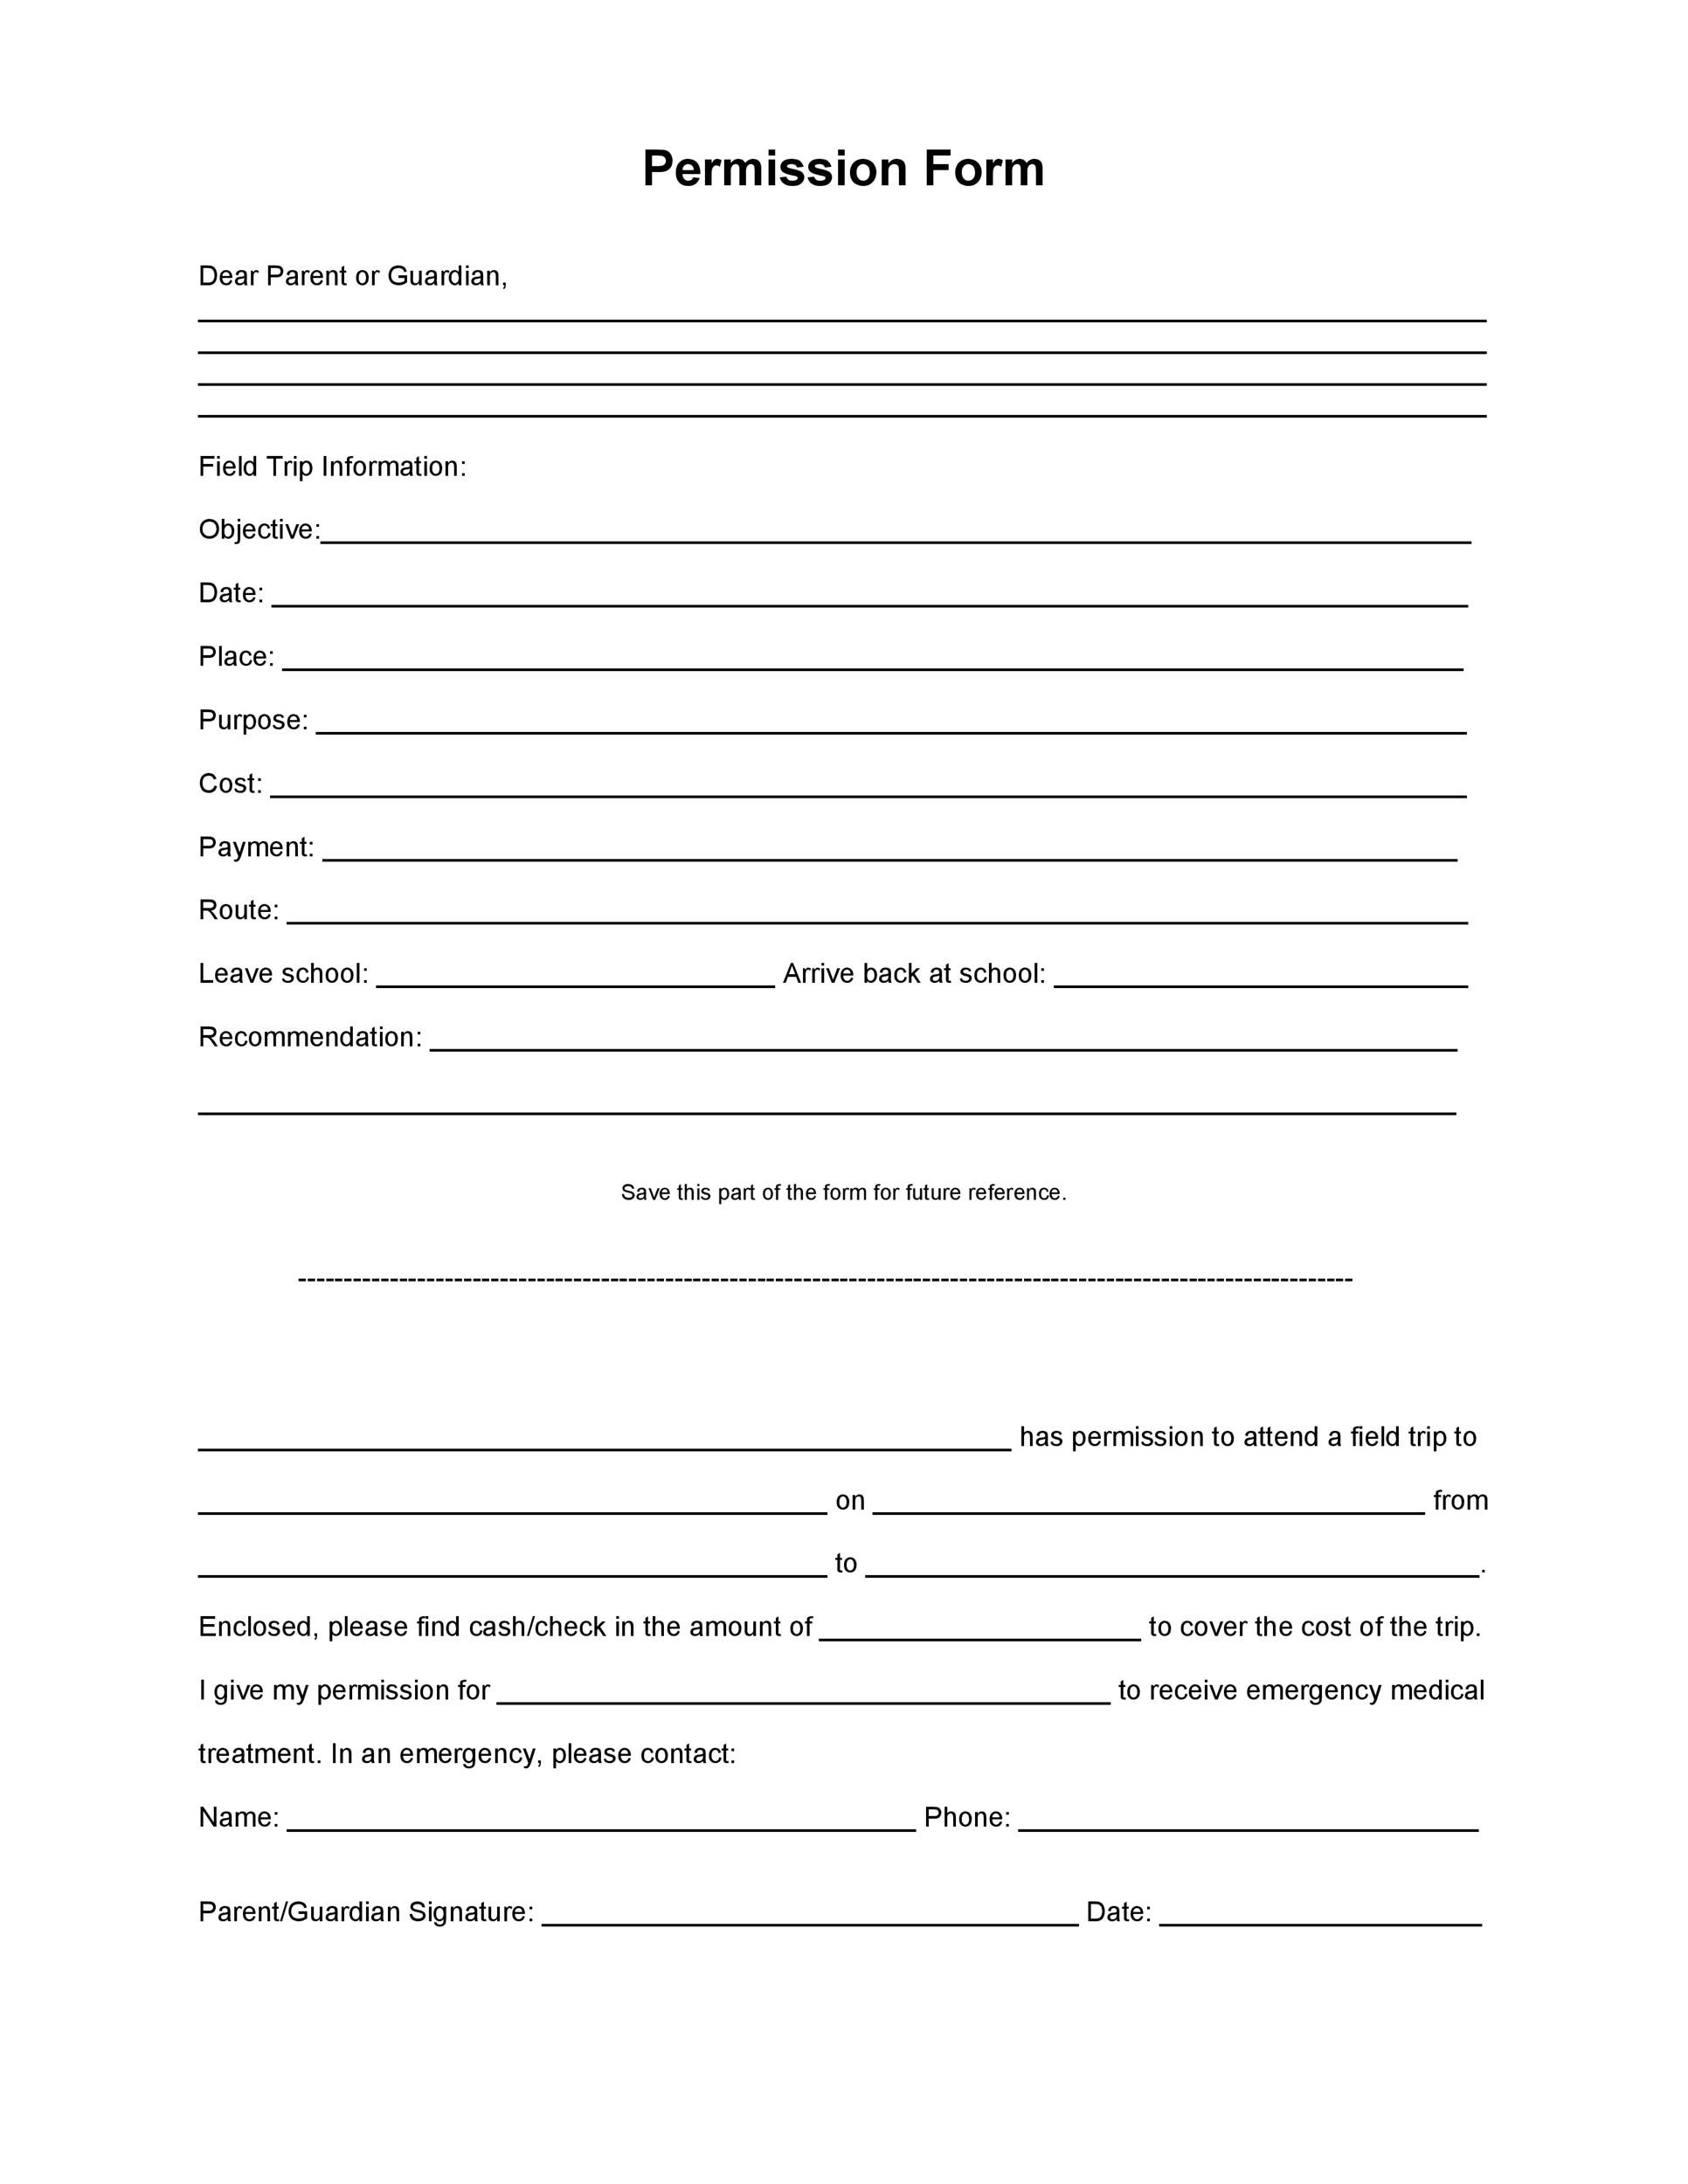 free photography print release form template - 35 permission slip templates field trip forms